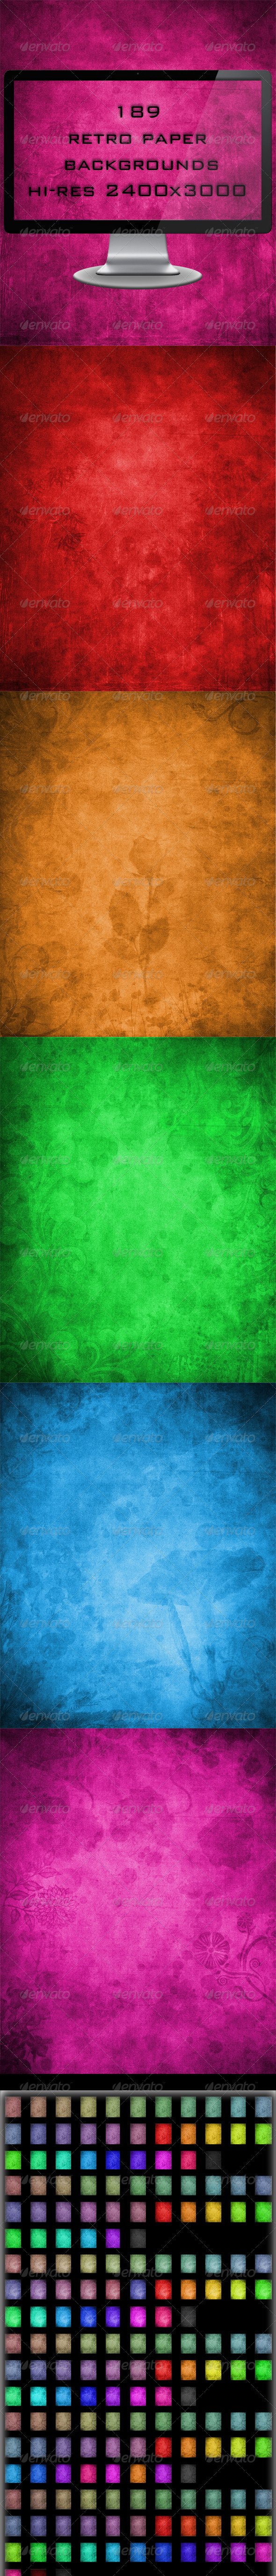 189 Retro Paper Backgrounds Mega Pack - Backgrounds Graphics